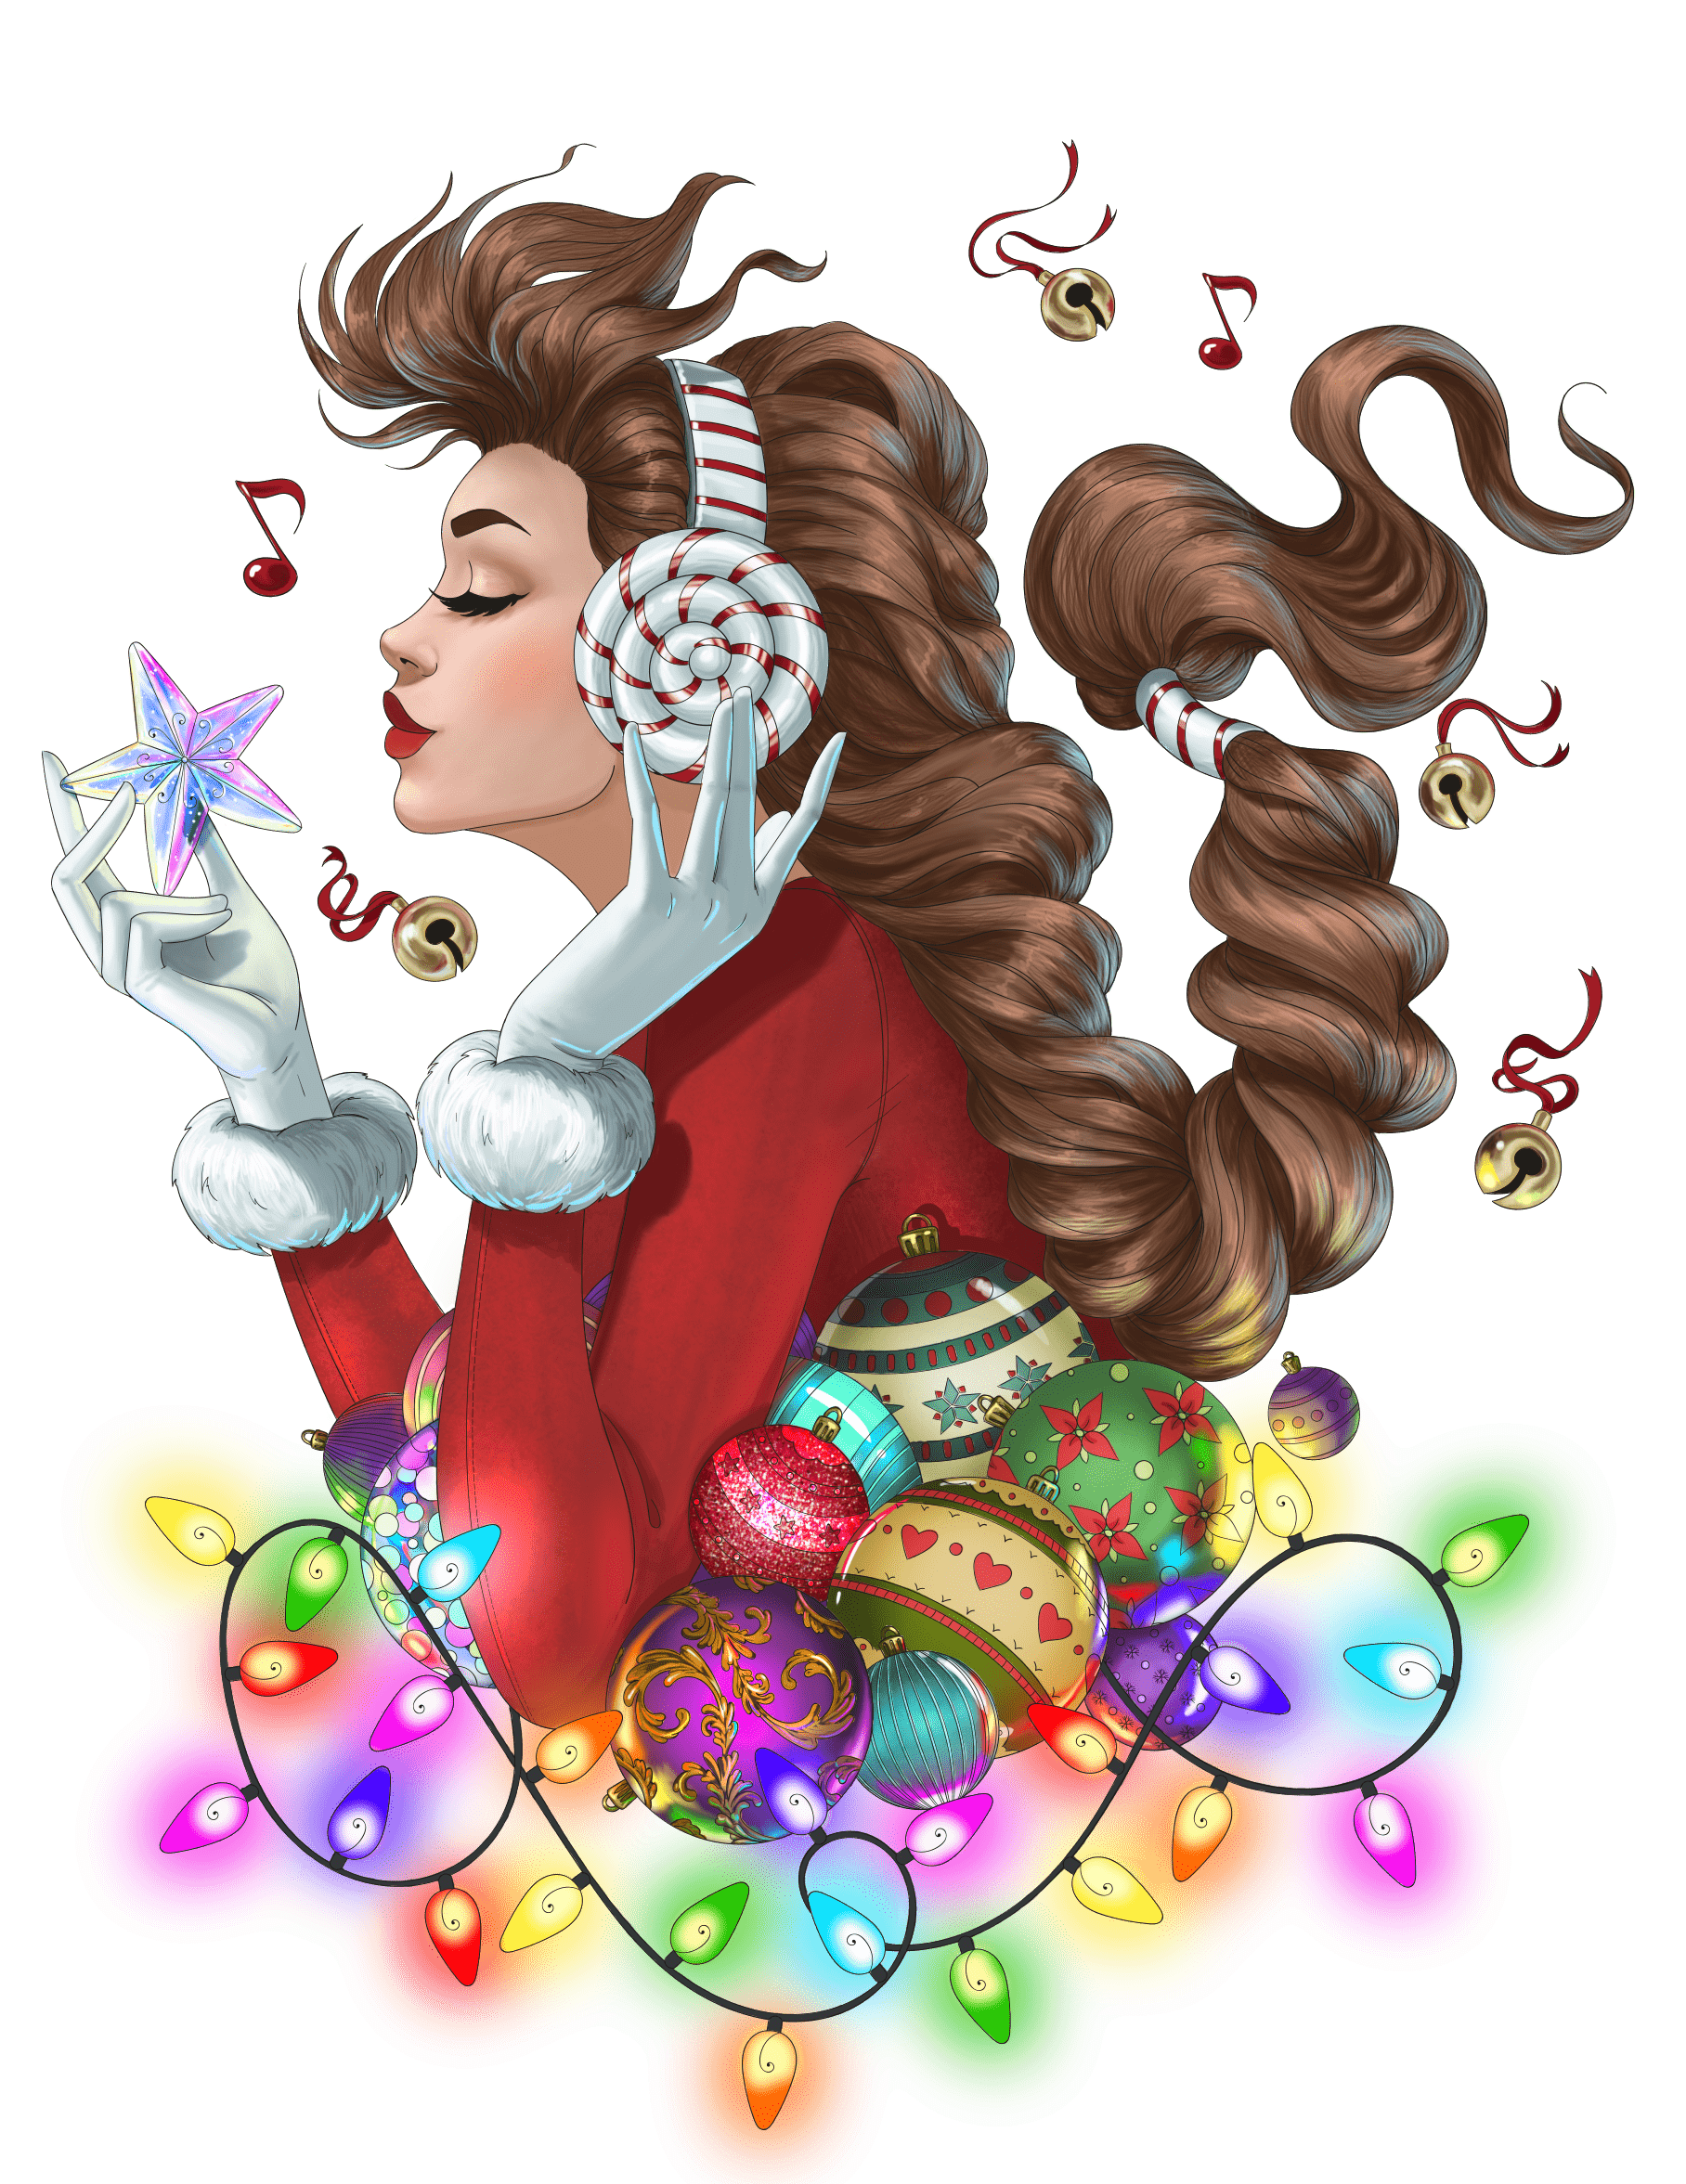 Line Artsy - Free adult coloring page - Christmas 2018 (colored)